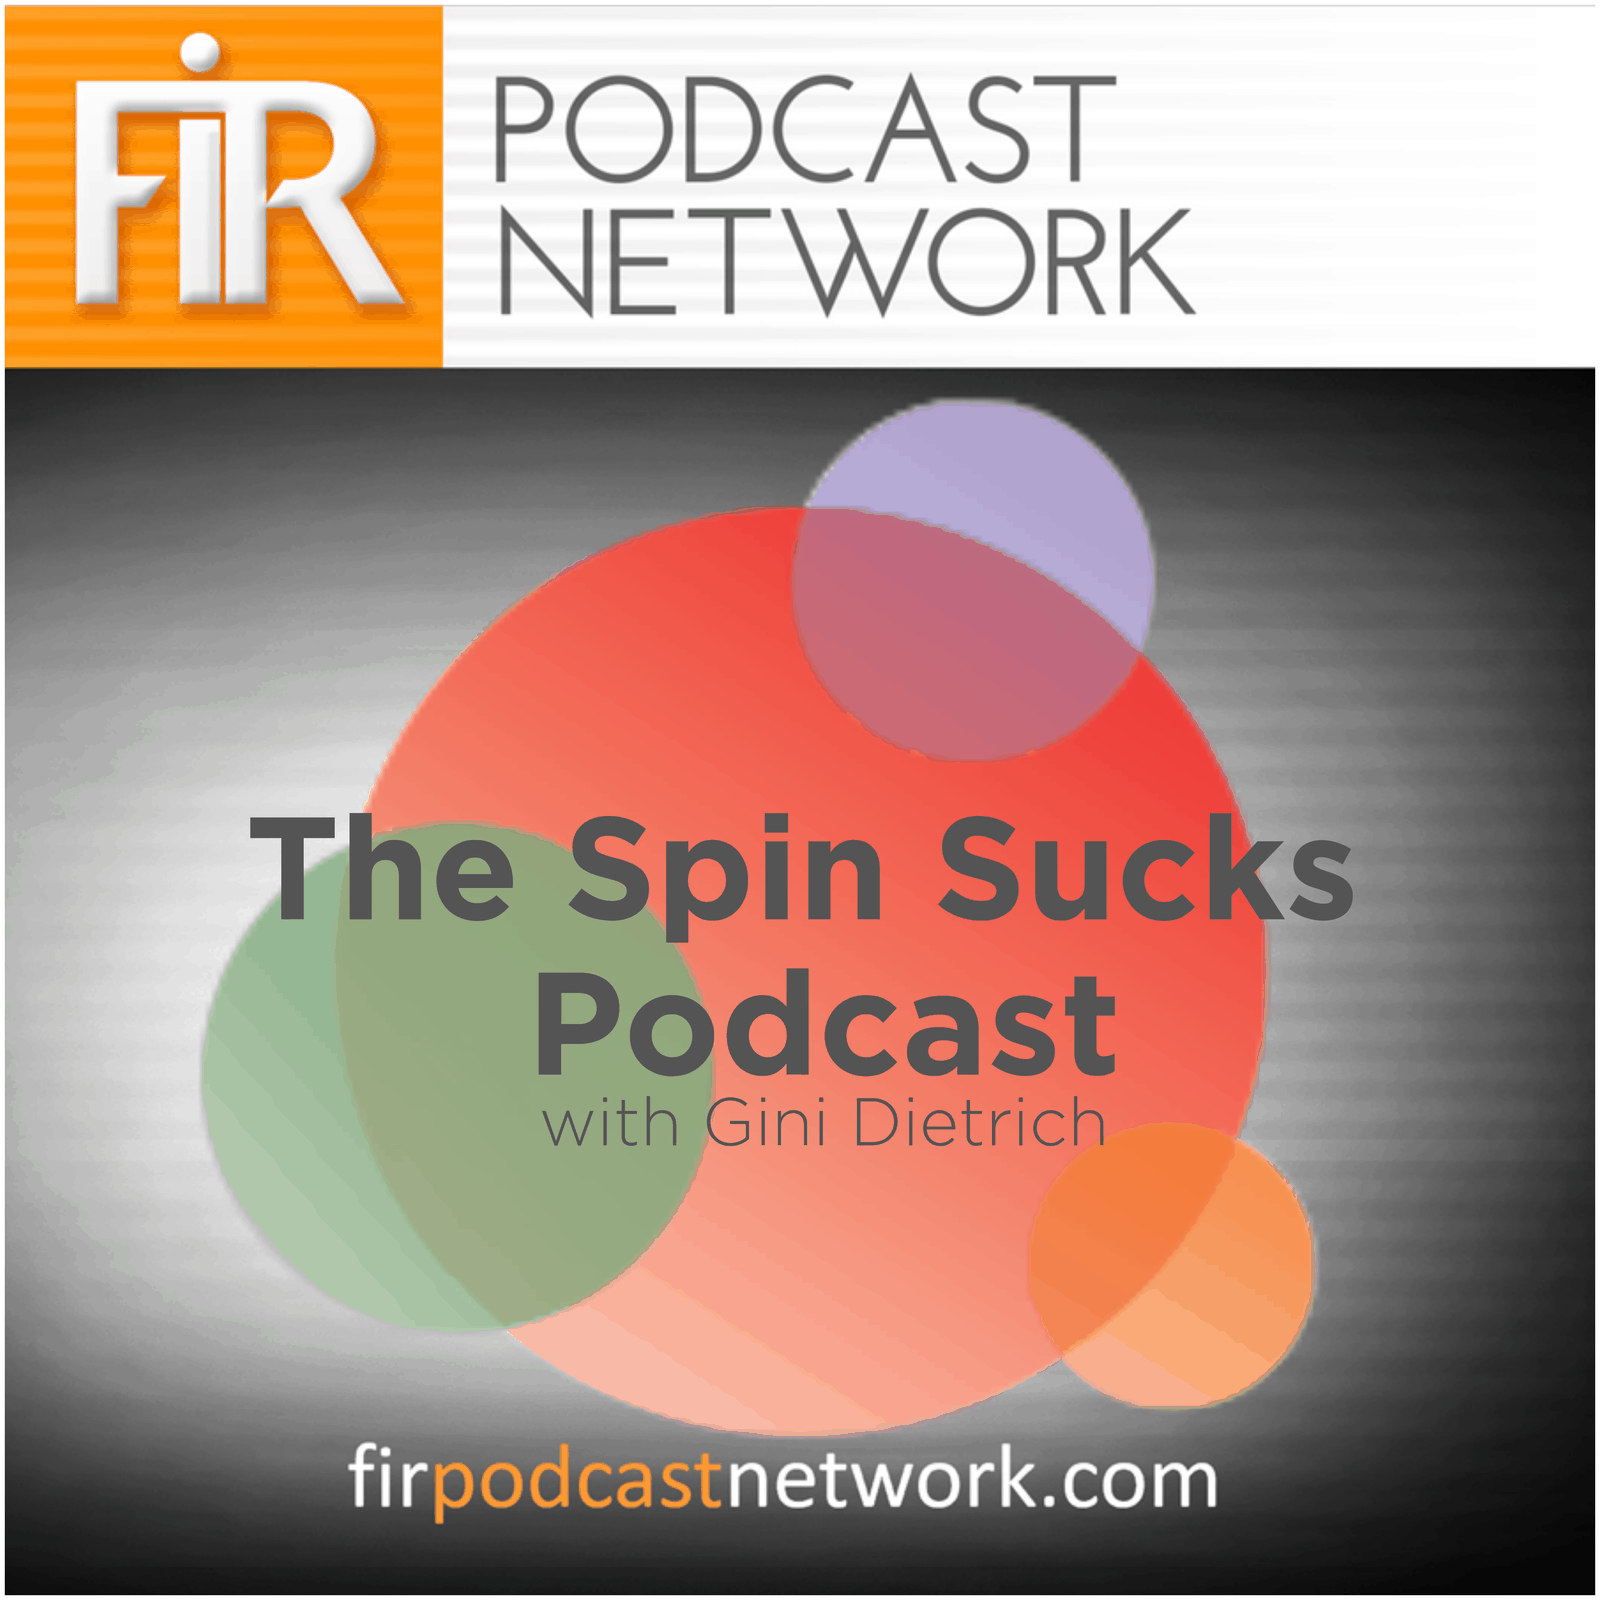 The Spin Sucks Podcast with Gini Dietrich